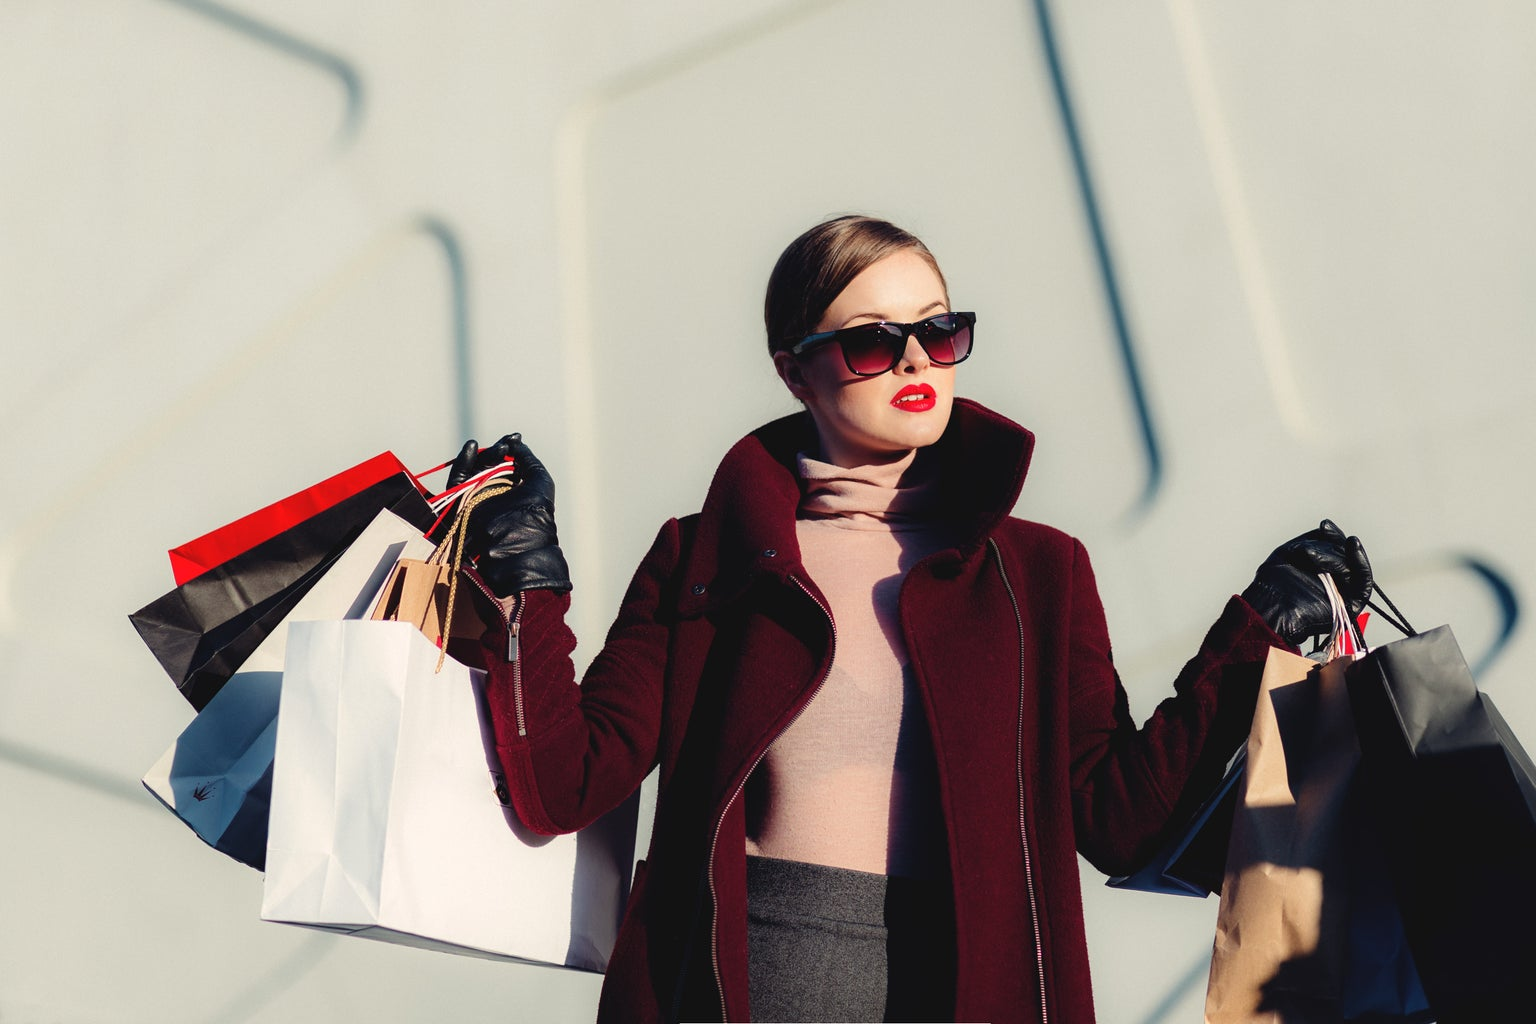 Woman with magenta coat and sunglasses holding up shopping bags